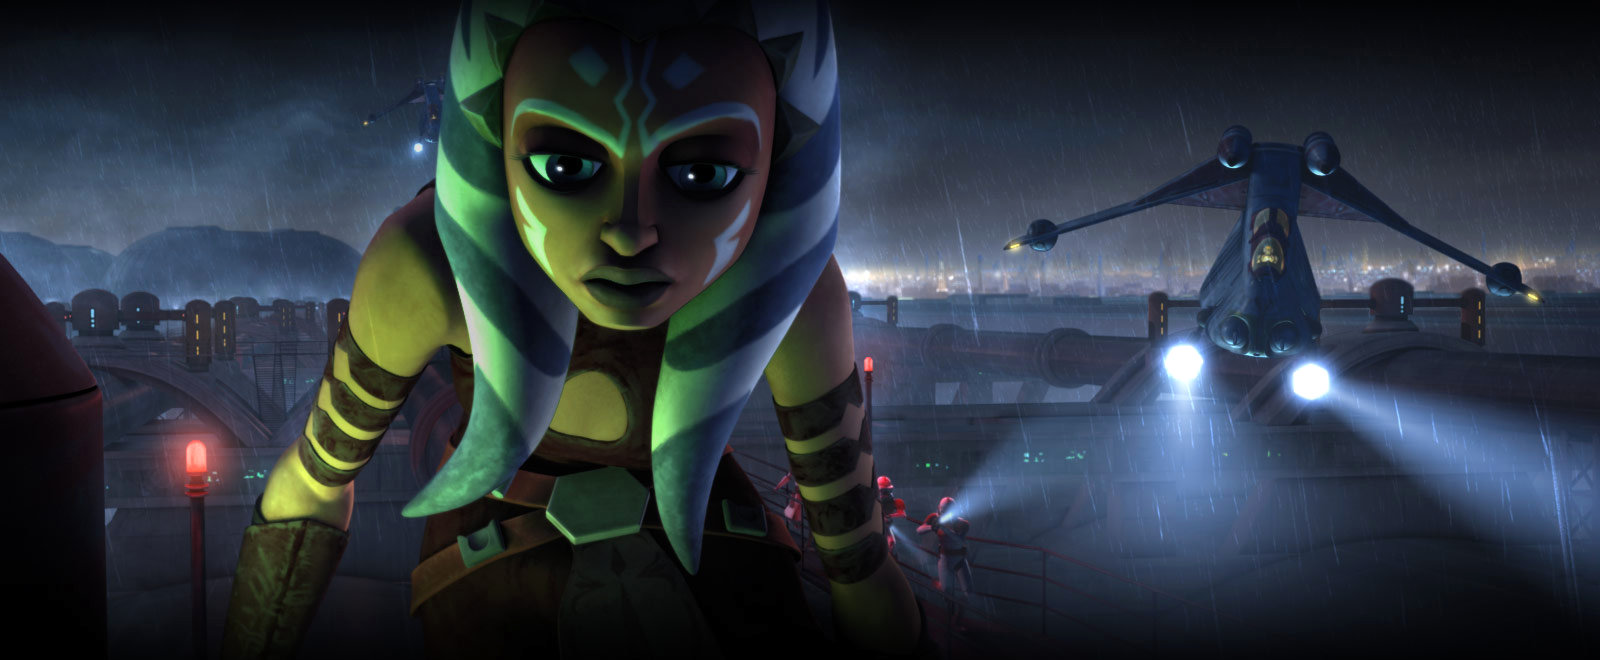 Star wars the clone wars ahsoka x  nackt thumbs